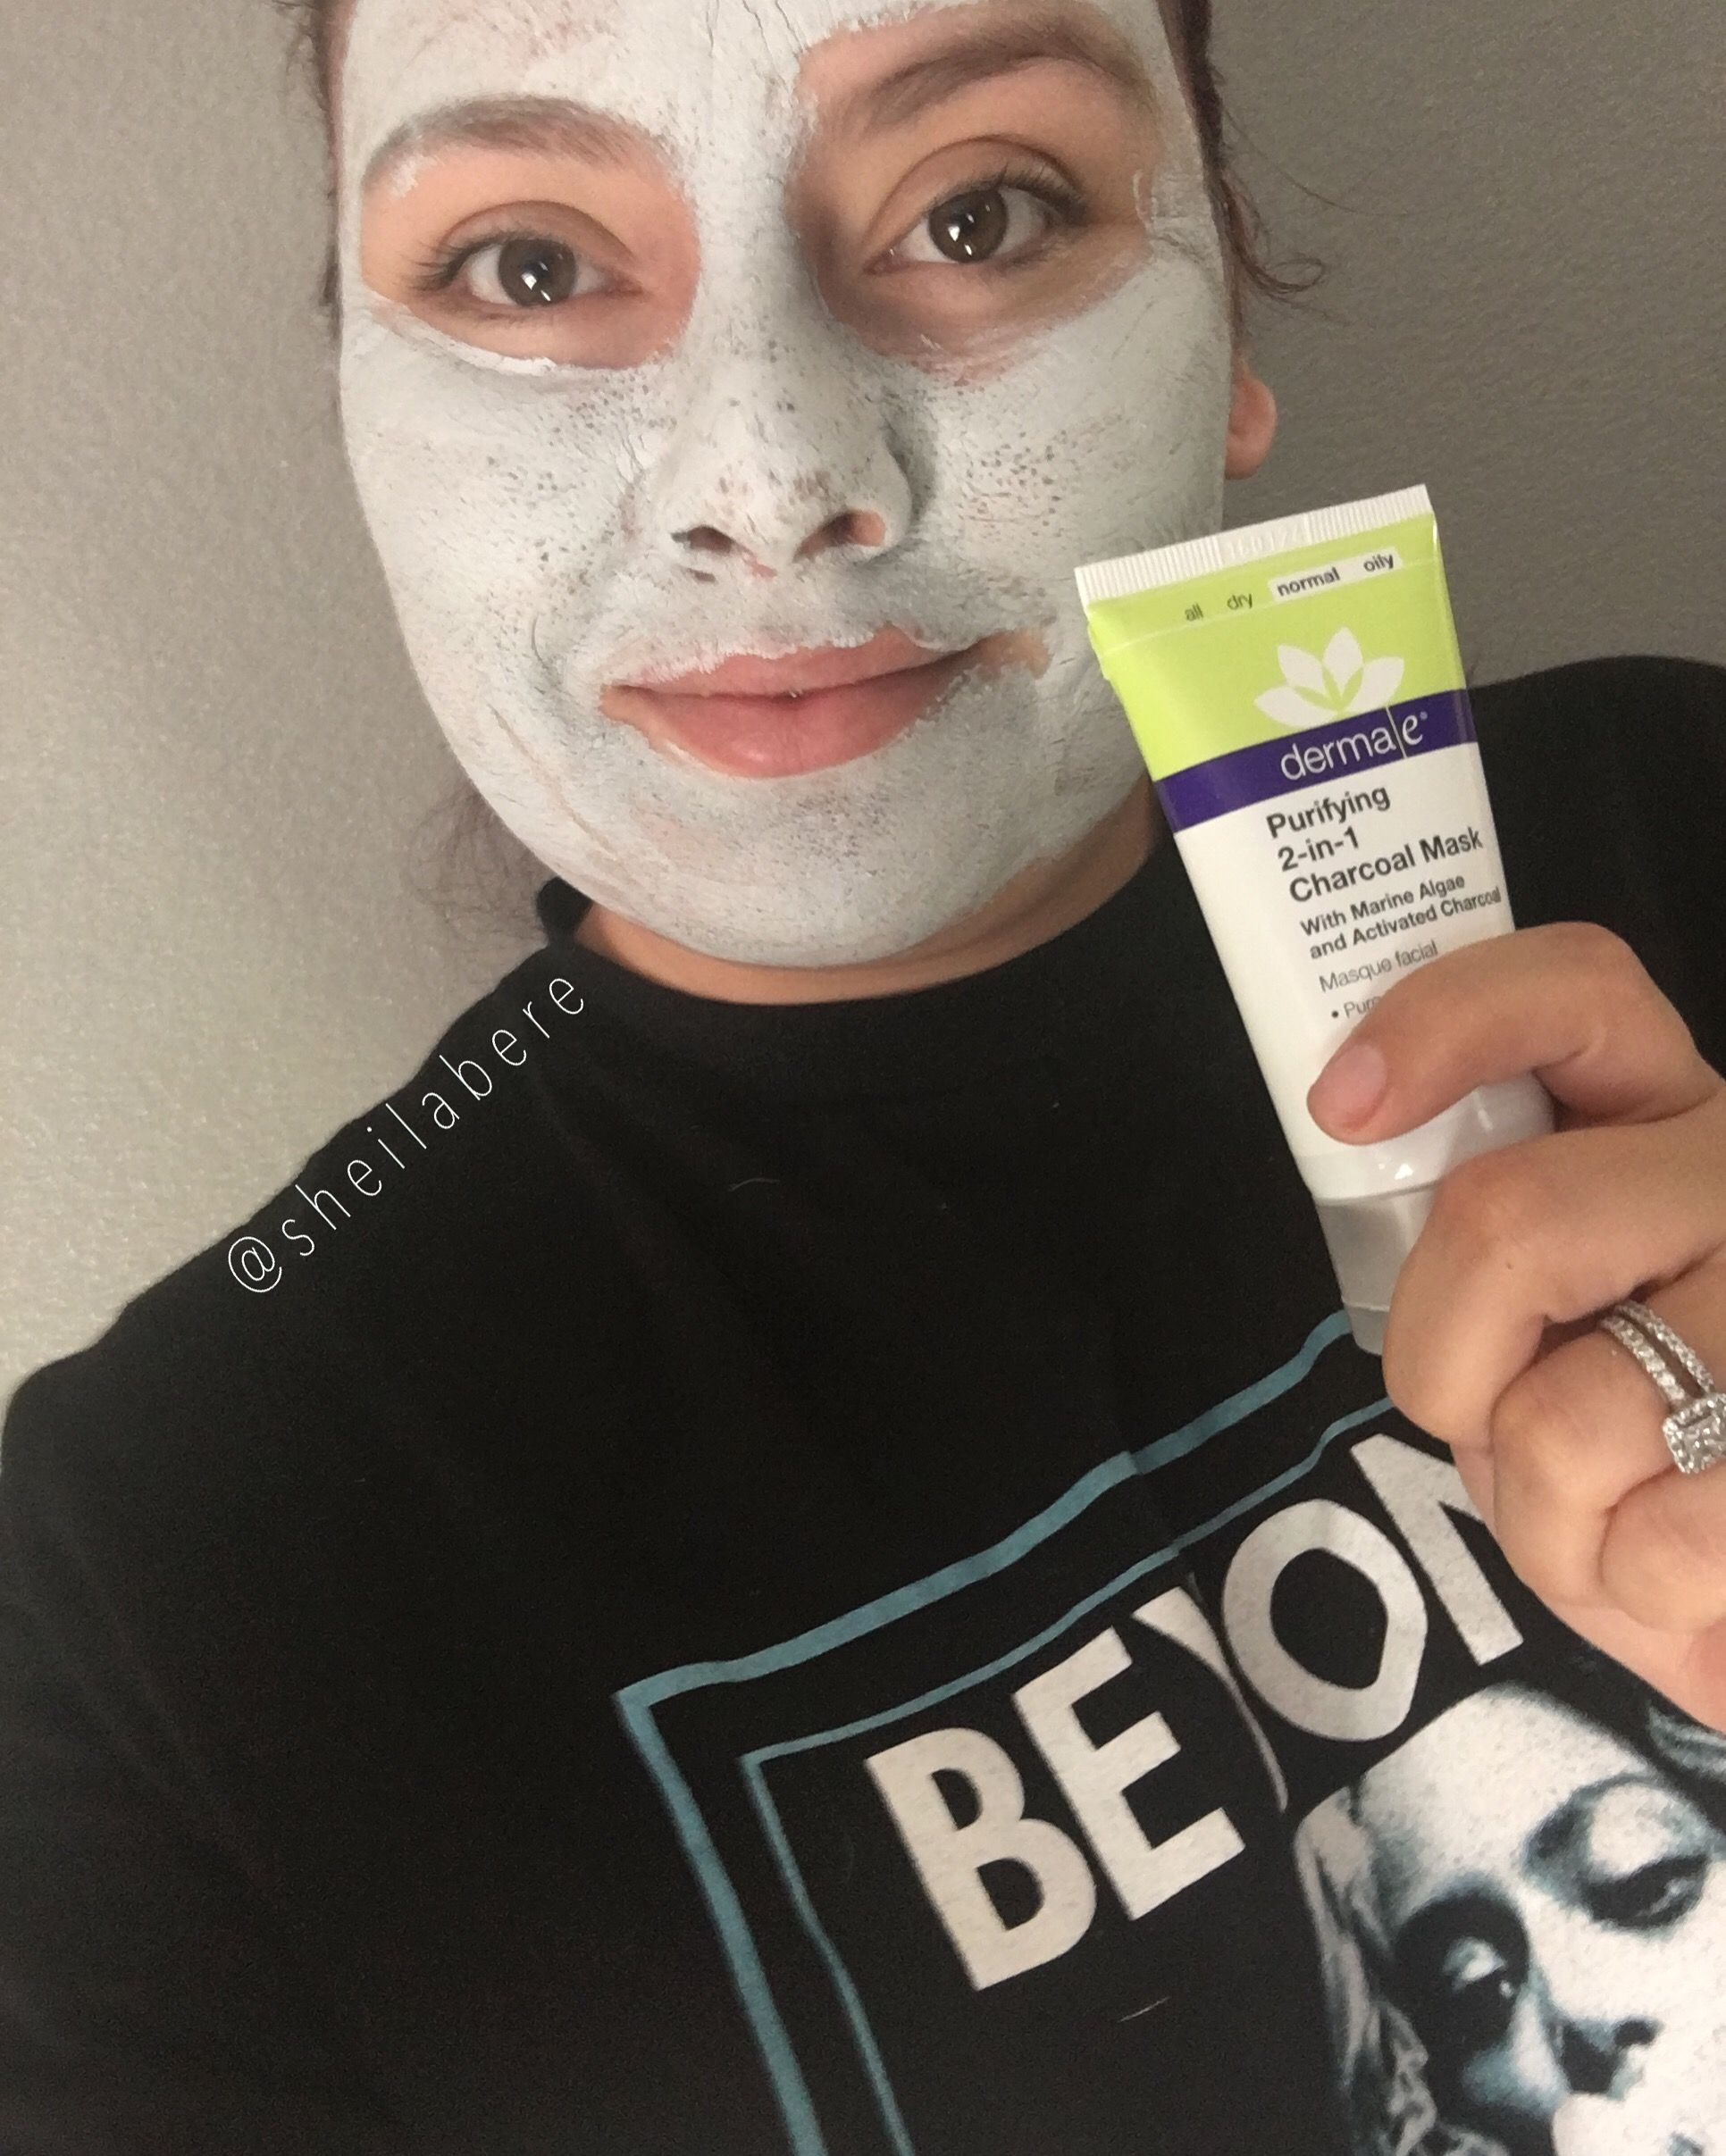 Day 68 • Dia 68Day 68! I have been OBSESSED with all the products @dermae sent me! Just as OBSESSED as I have been with my @beyonce t-shirt! That says a LOT hahaha. Can't wait to do a review on all the products for you!  Dia 68! Estado OBSESIONADA codo todos lod productos que @dermae me mando! Igual de OBSESIONADA como mi playera de @beyonce ! Eso quiere decir MUCHO jajaja. Esten pendientes de la reseña que les voy hacer sobre los productos!